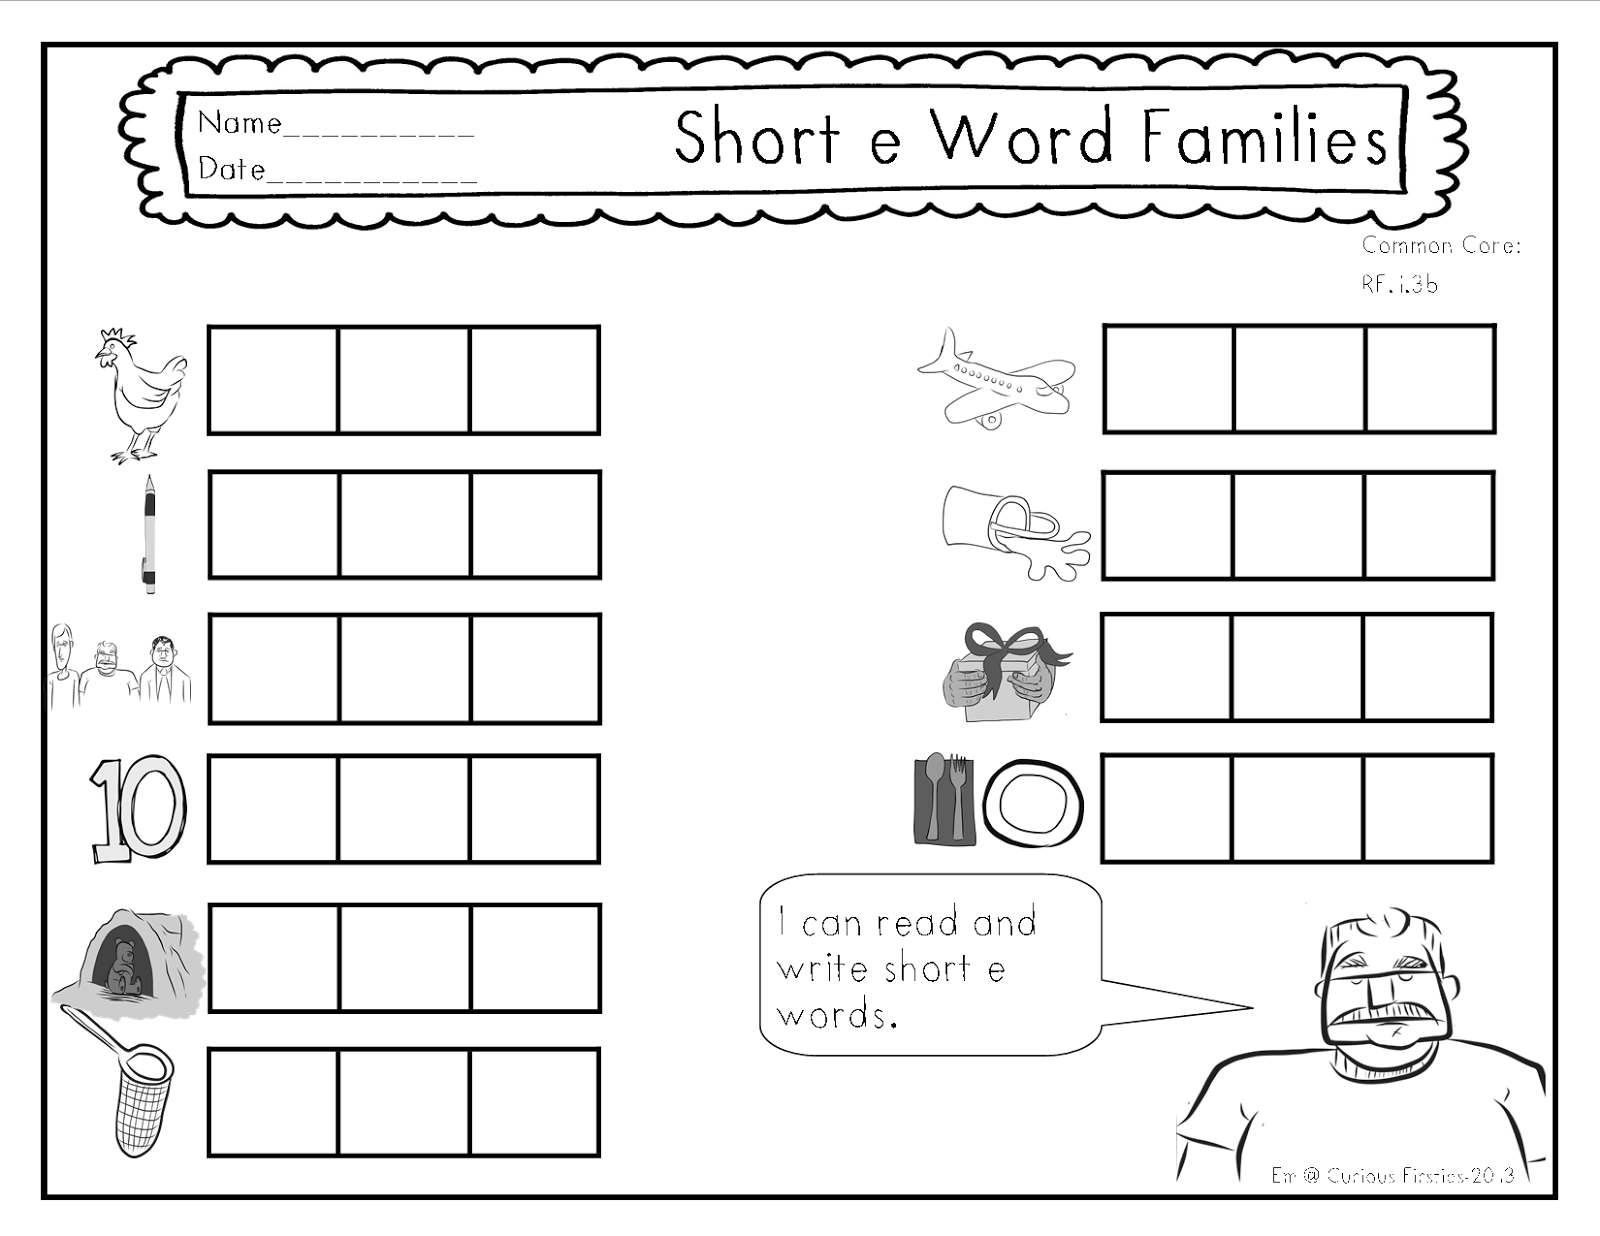 Printables Short E Worksheets For First Grade curious firsties adding more to my phonics instruction i thought these sheets could be used in two different ways before we flip through the slides of particular word boxes on this shee